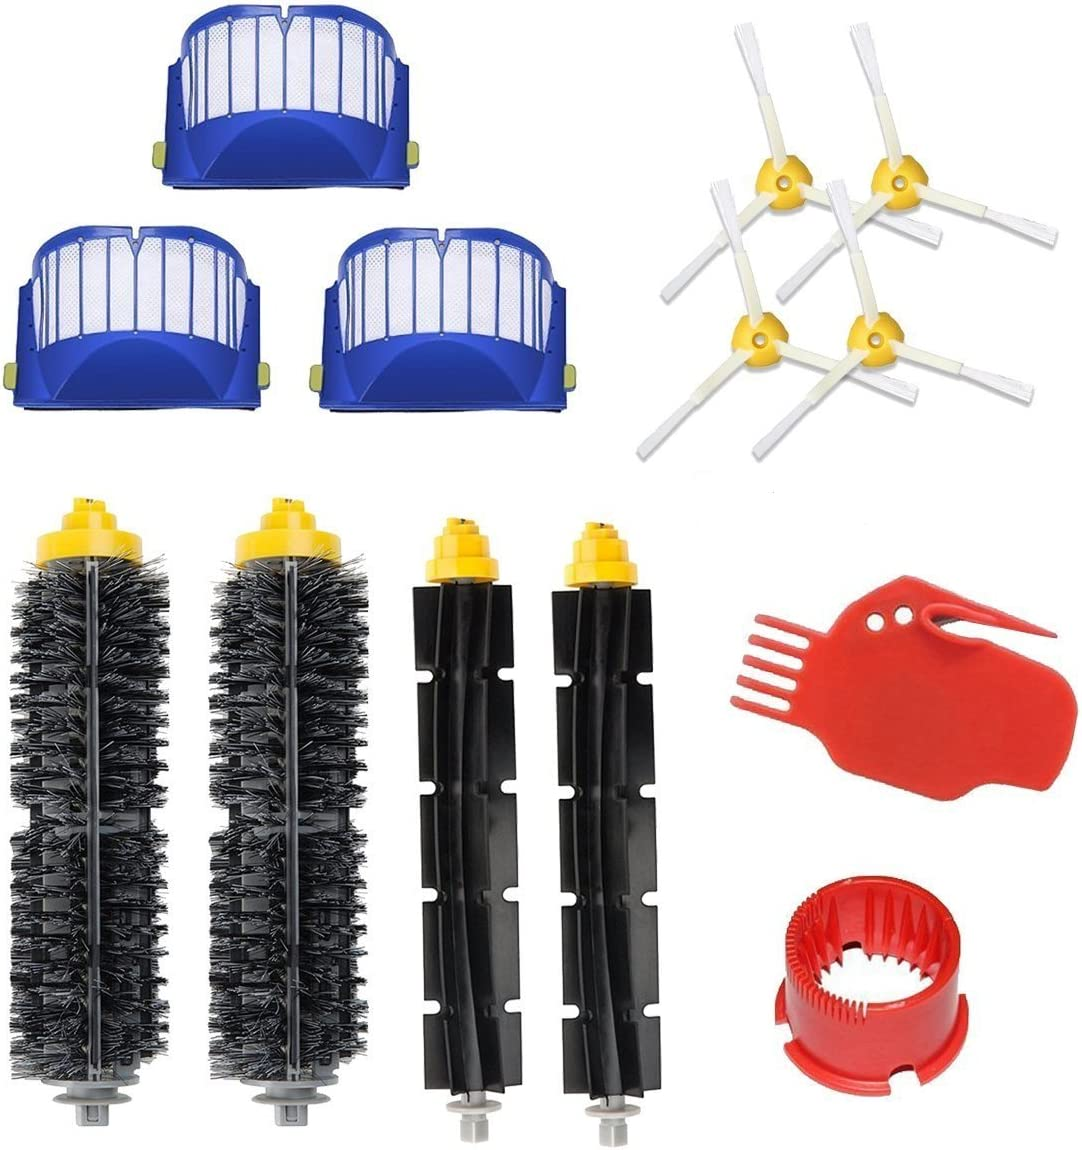 Eagglew Accessories for iRobot Roomba 600 650 Series Replacement Part Kits - 2 Bristle Brush & Flexible Beater Brush, 3 Filter, 4 3-Arm Side Brush, 1 Kit of Cleaning Tool